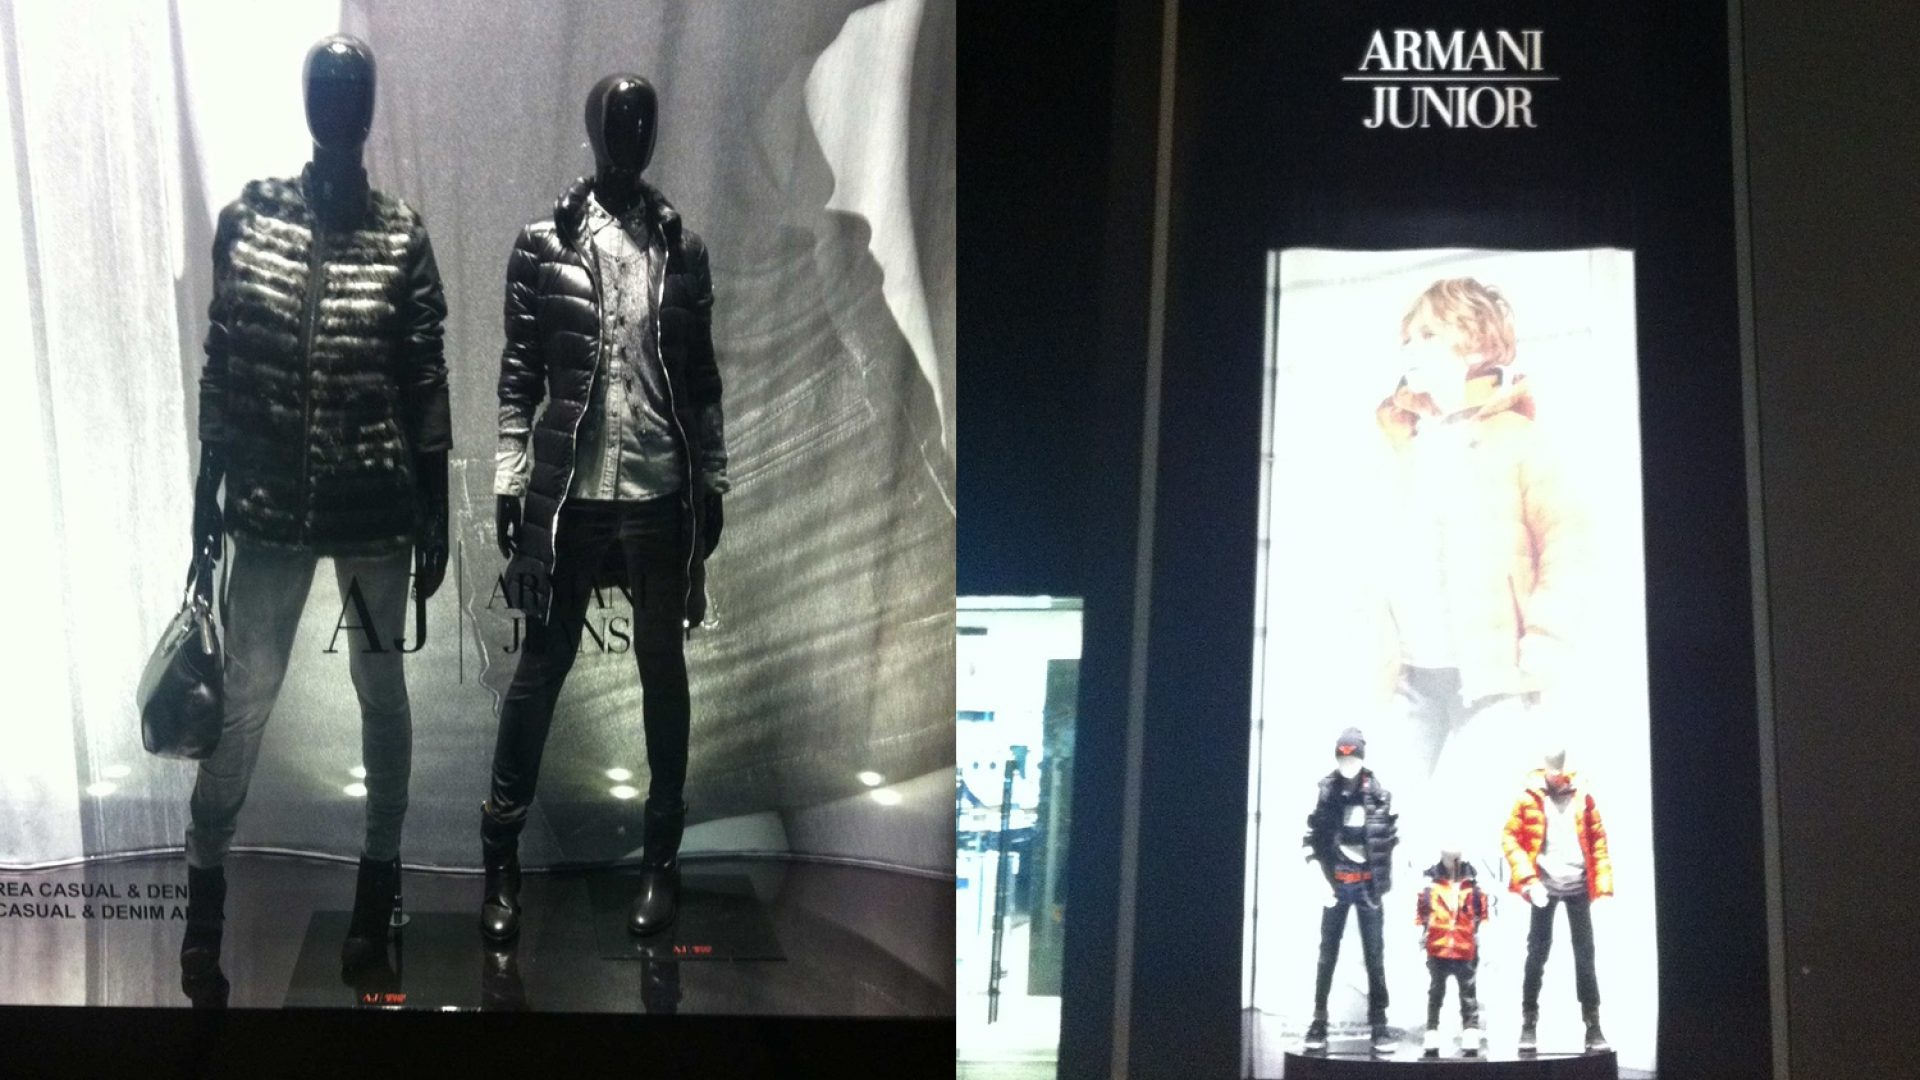 Armani - Selection of hi-profile materials: lacquered wood, steel, mirrors